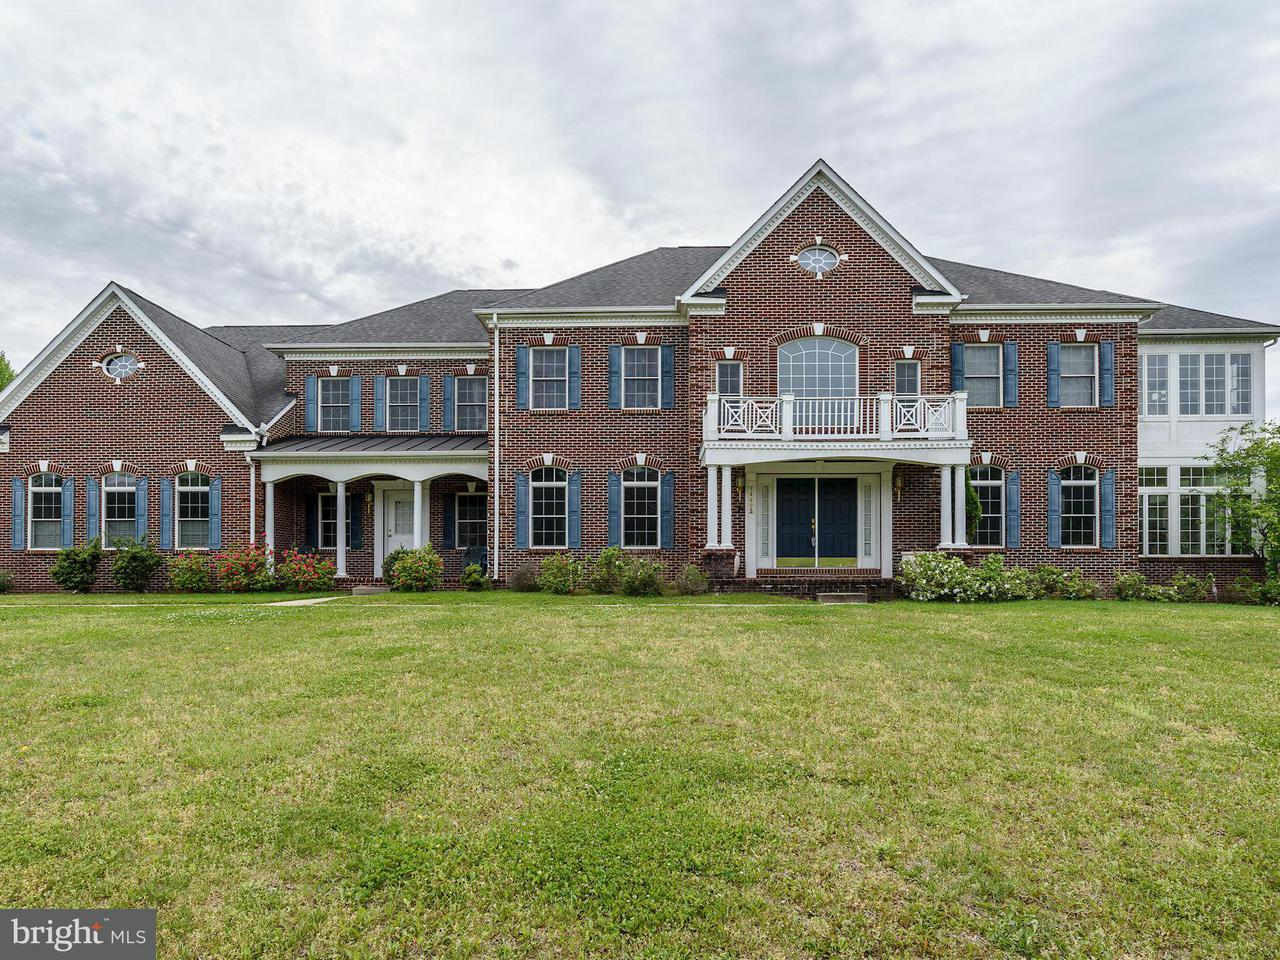 Single Family Home for Sale at 14405 Woodmore Oaks Court 14405 Woodmore Oaks Court Bowie, Maryland 20721 United States